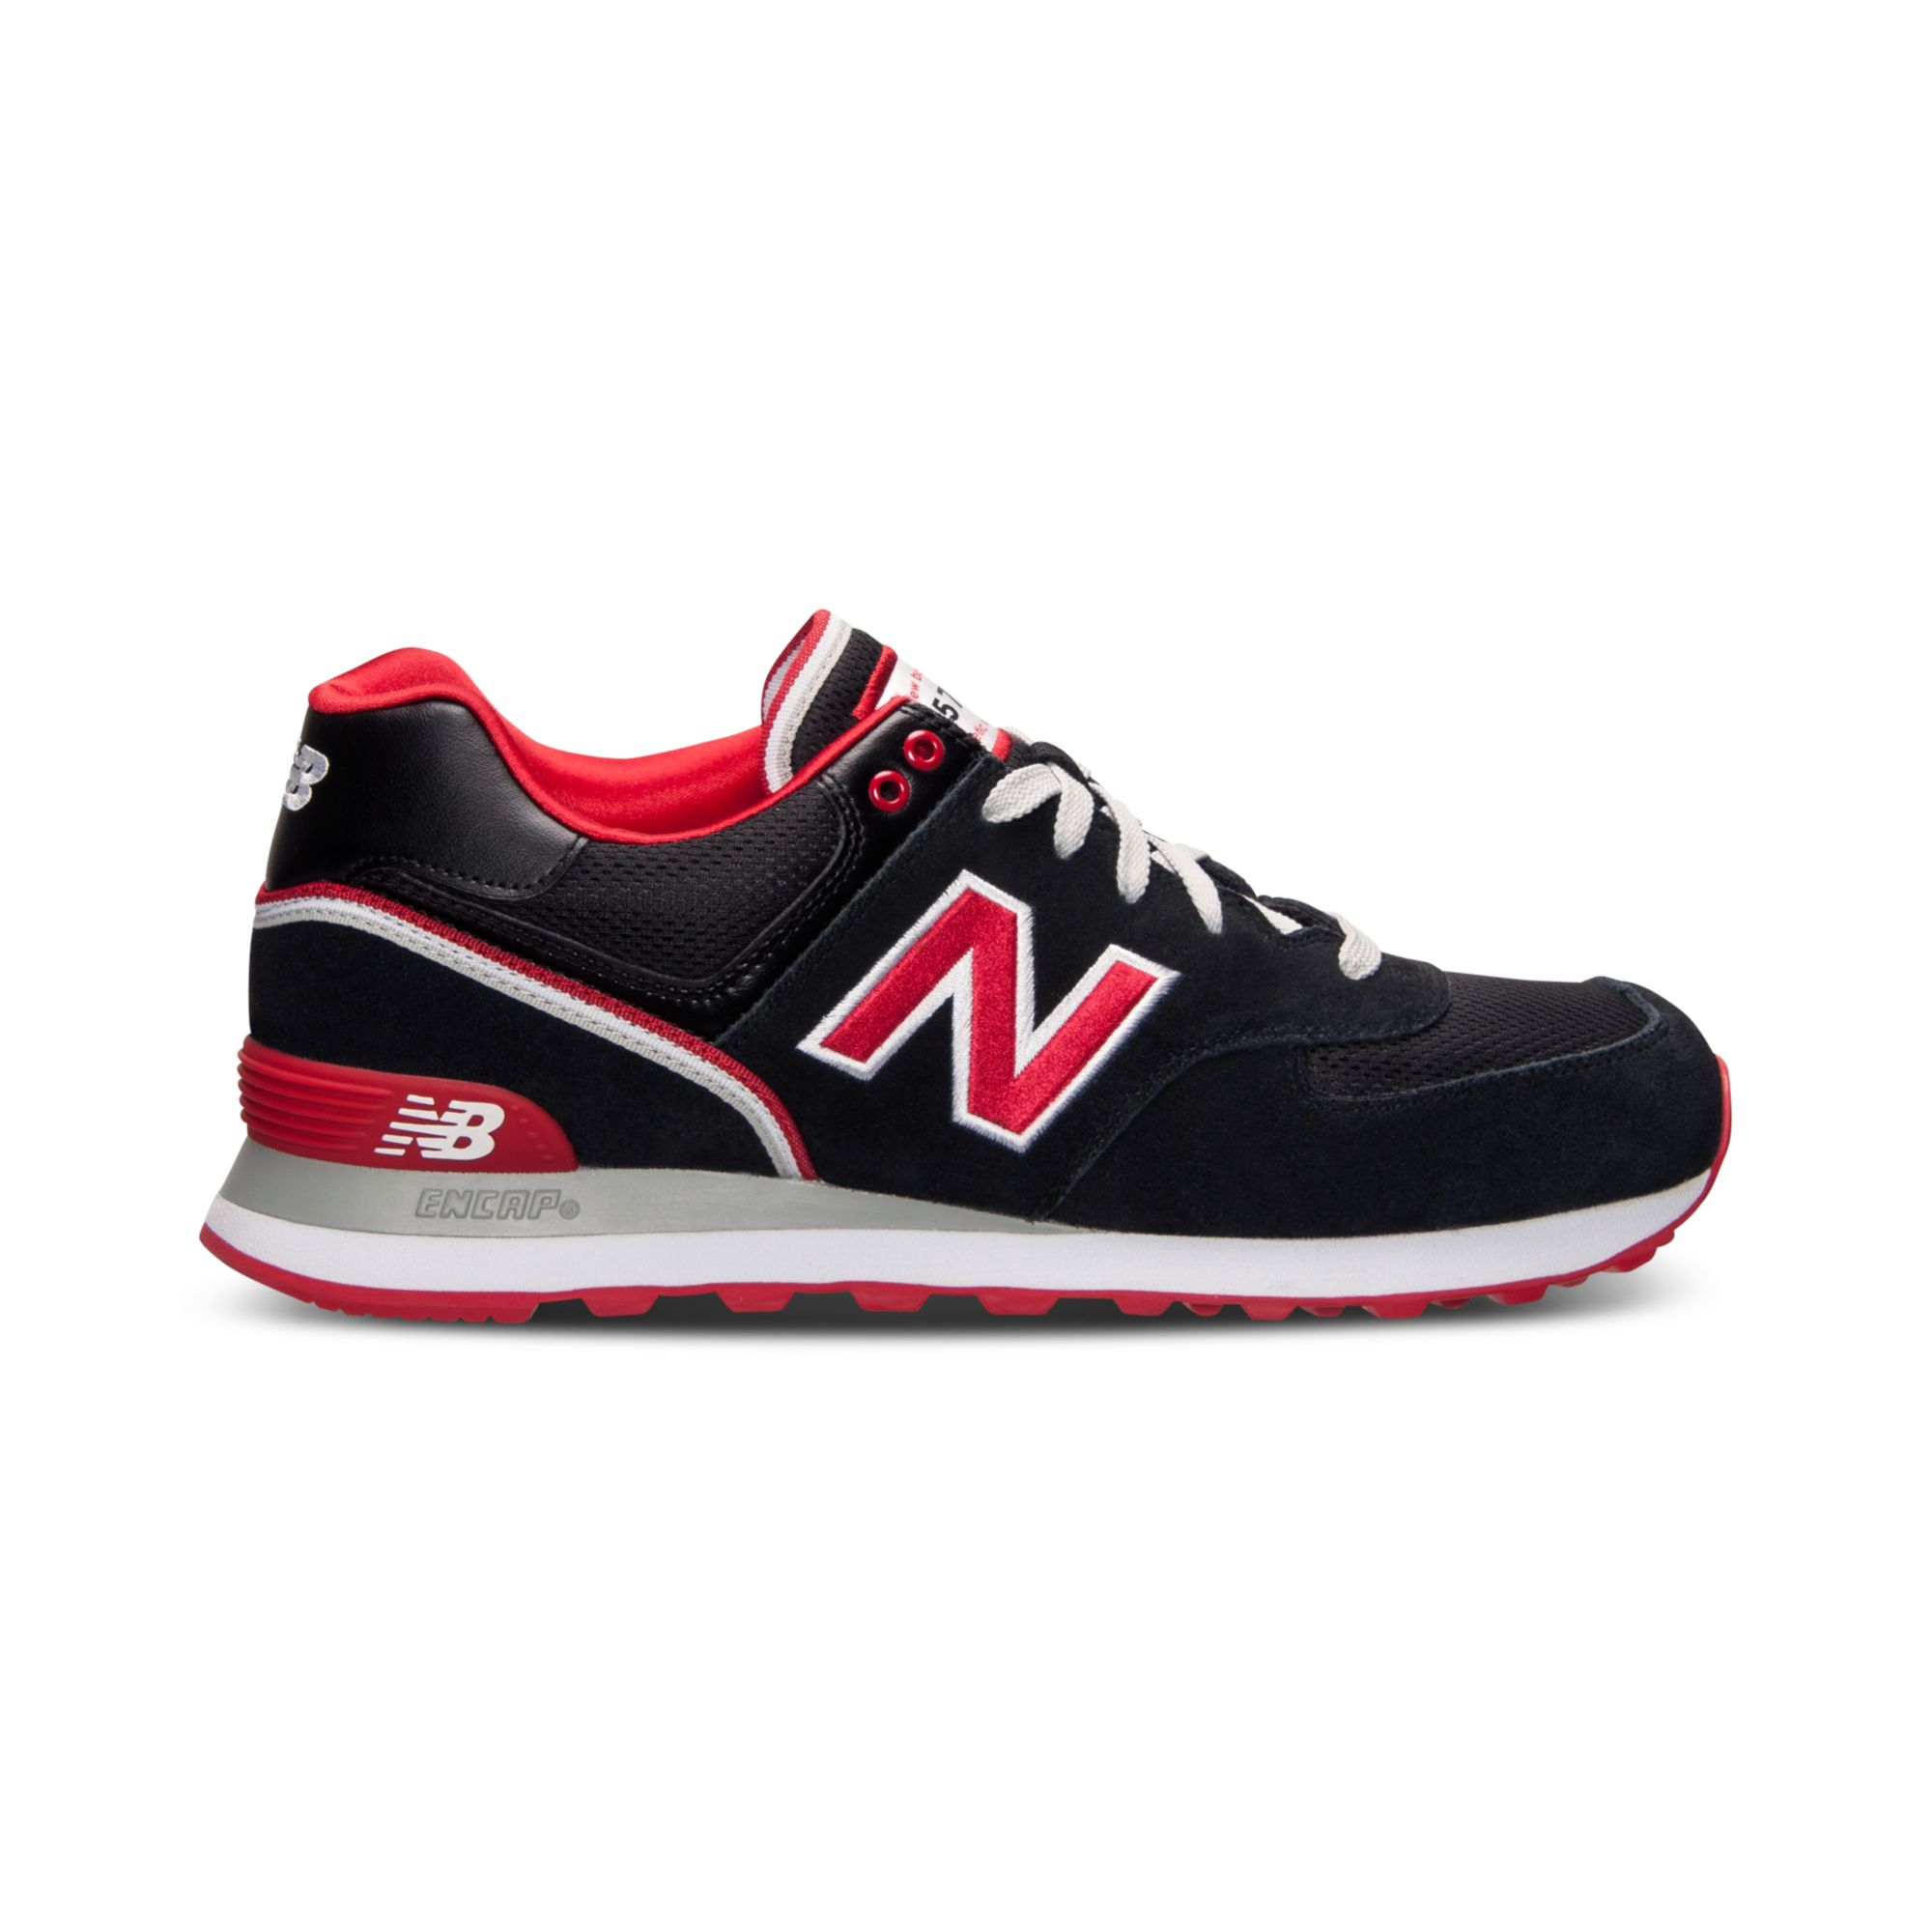 new balance mens 574 stadium jacket casual sneakers from. Black Bedroom Furniture Sets. Home Design Ideas